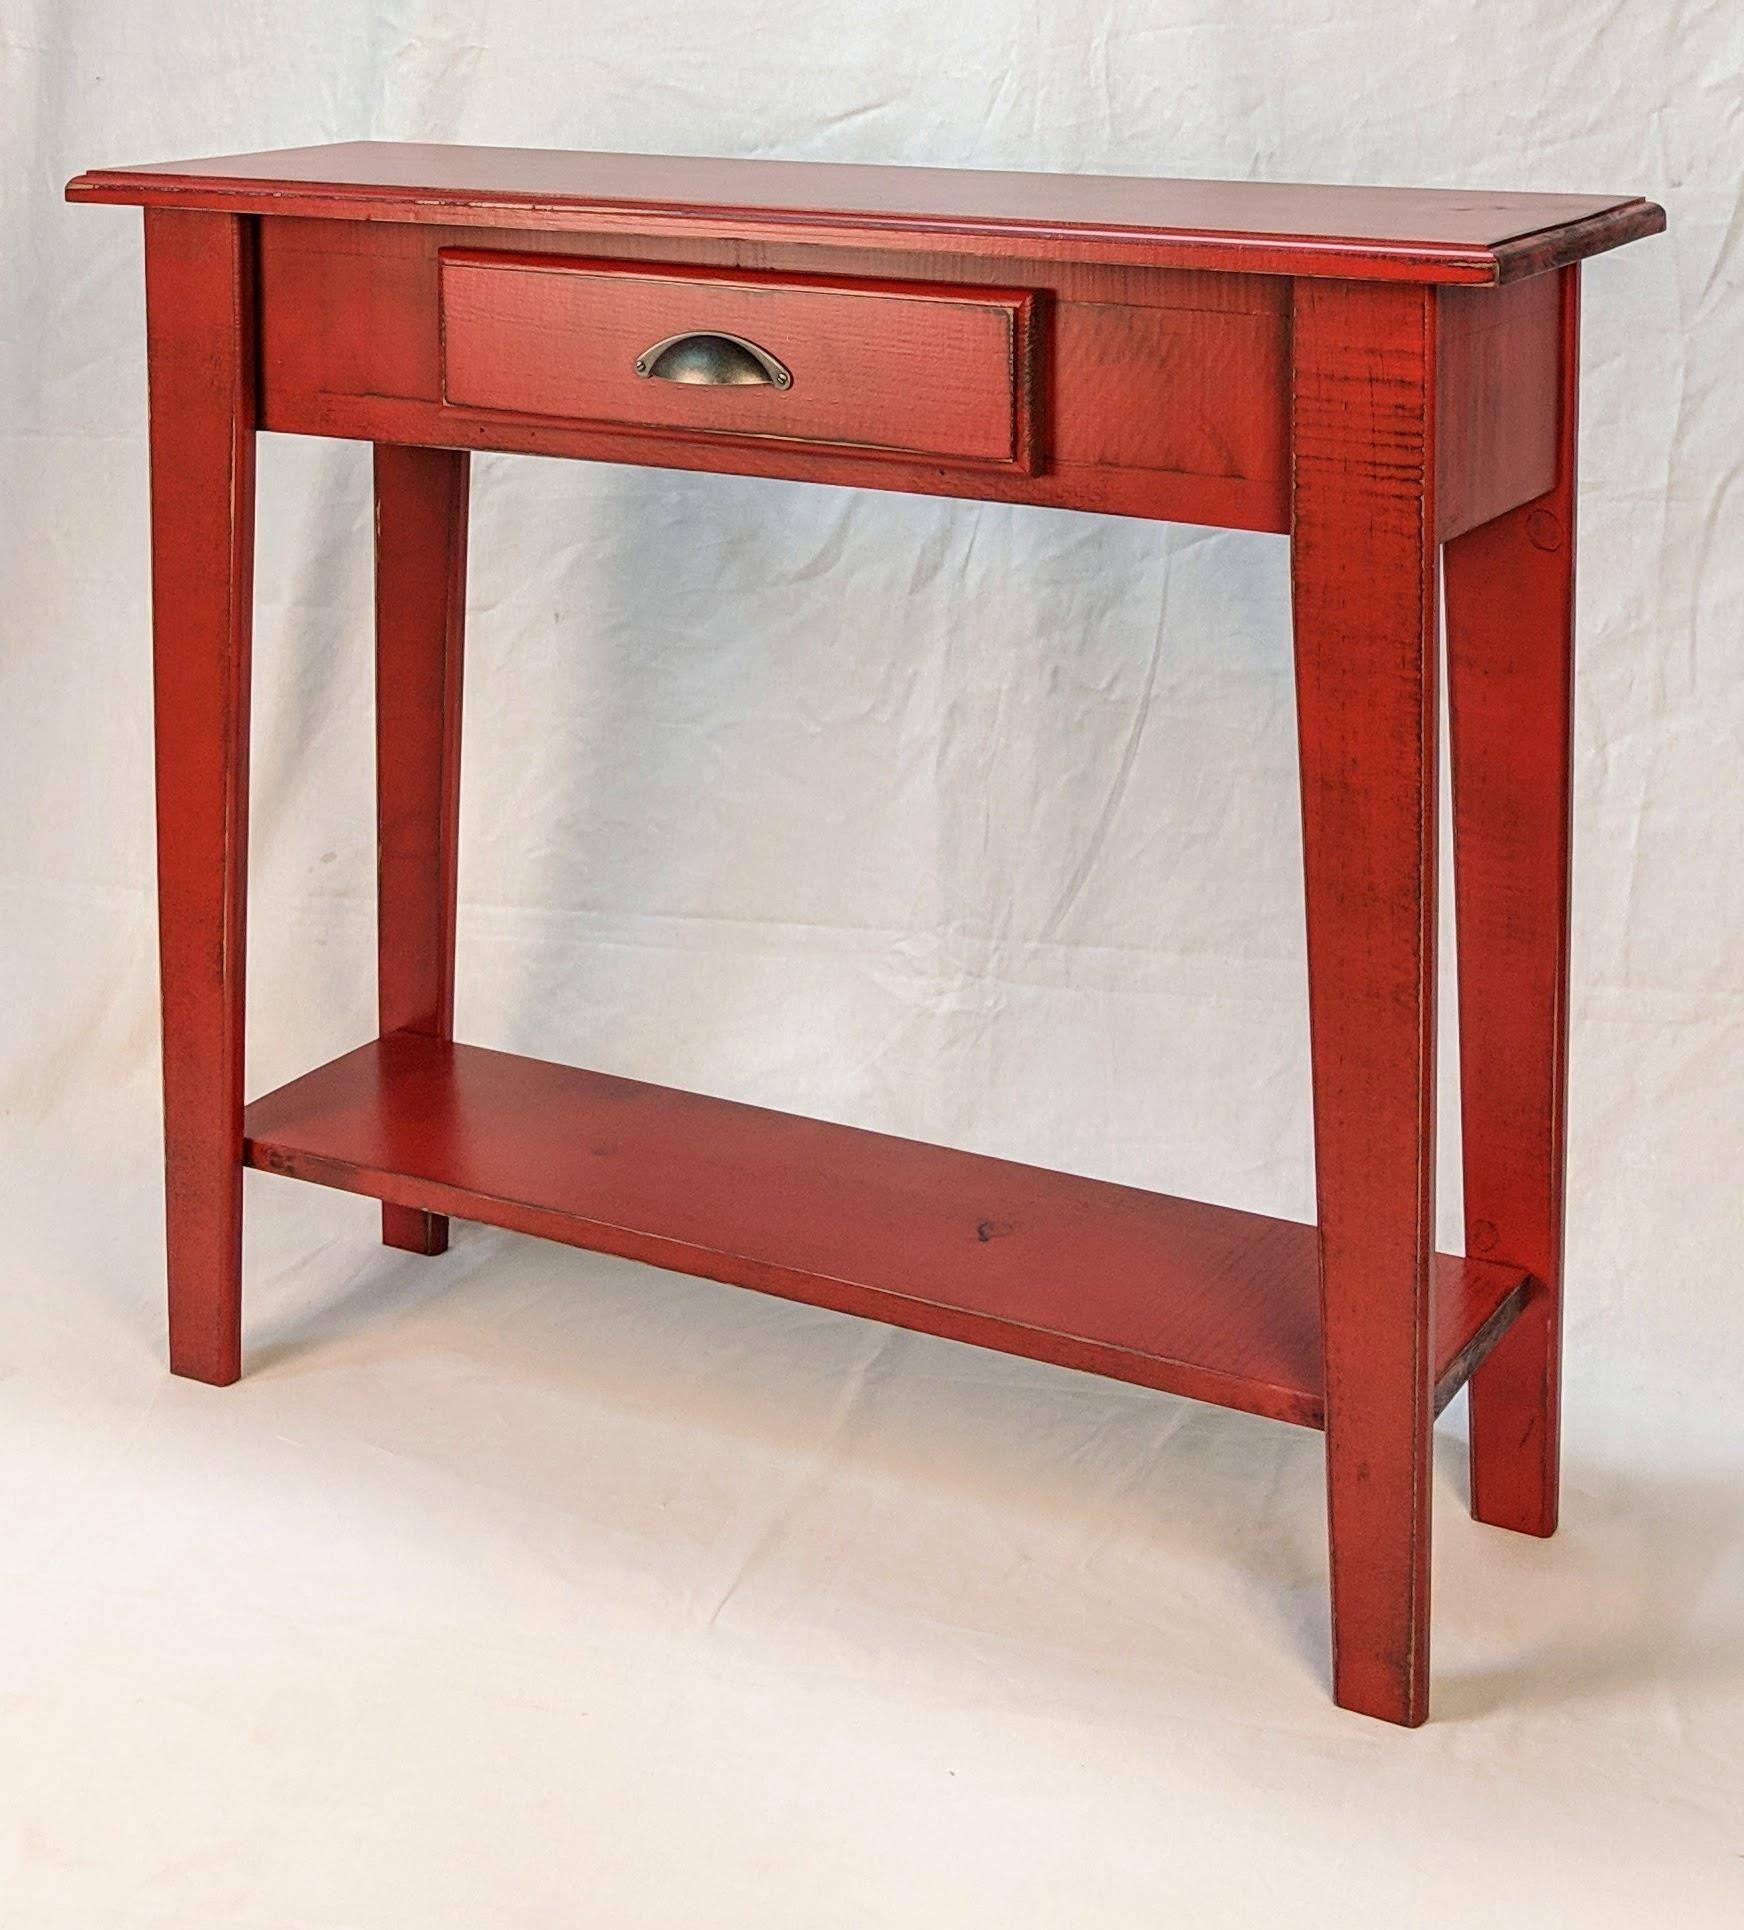 SW511 Foyer Table at Bennett's Furniture and Mattresses